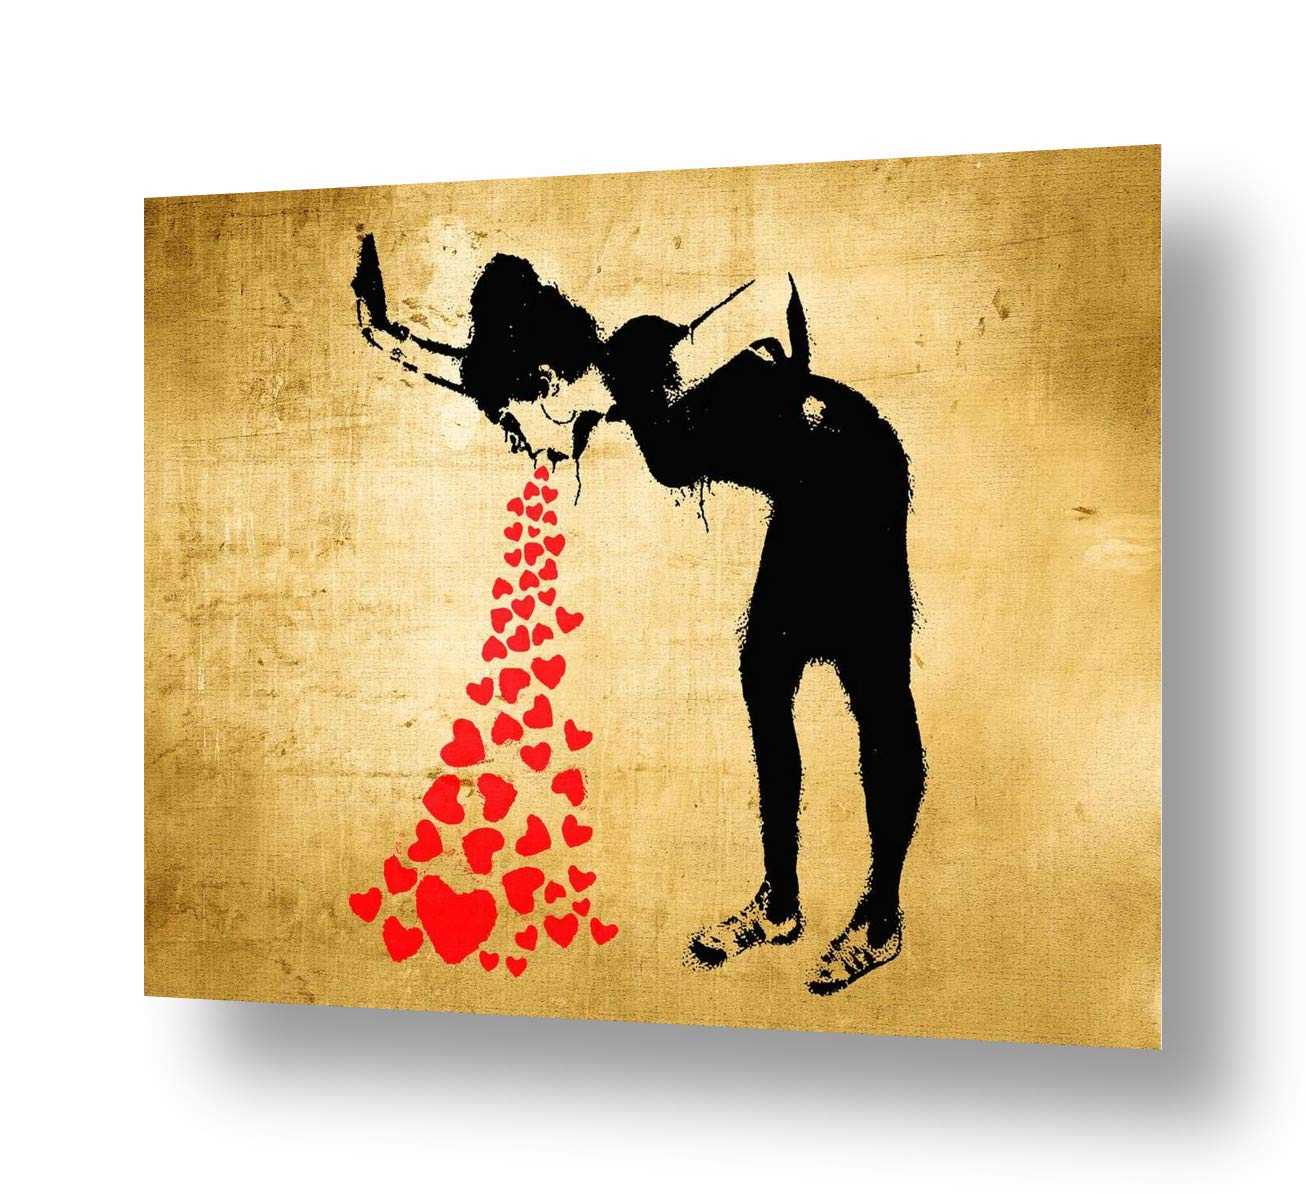 Unique Collage #156 Always Hope Flower Thrower by Banksy Ready to frame Alonline Art | 16x12-41x30cm print on canvas Wall art home decor for bedroom giclee picture HD synthetic, Rolled